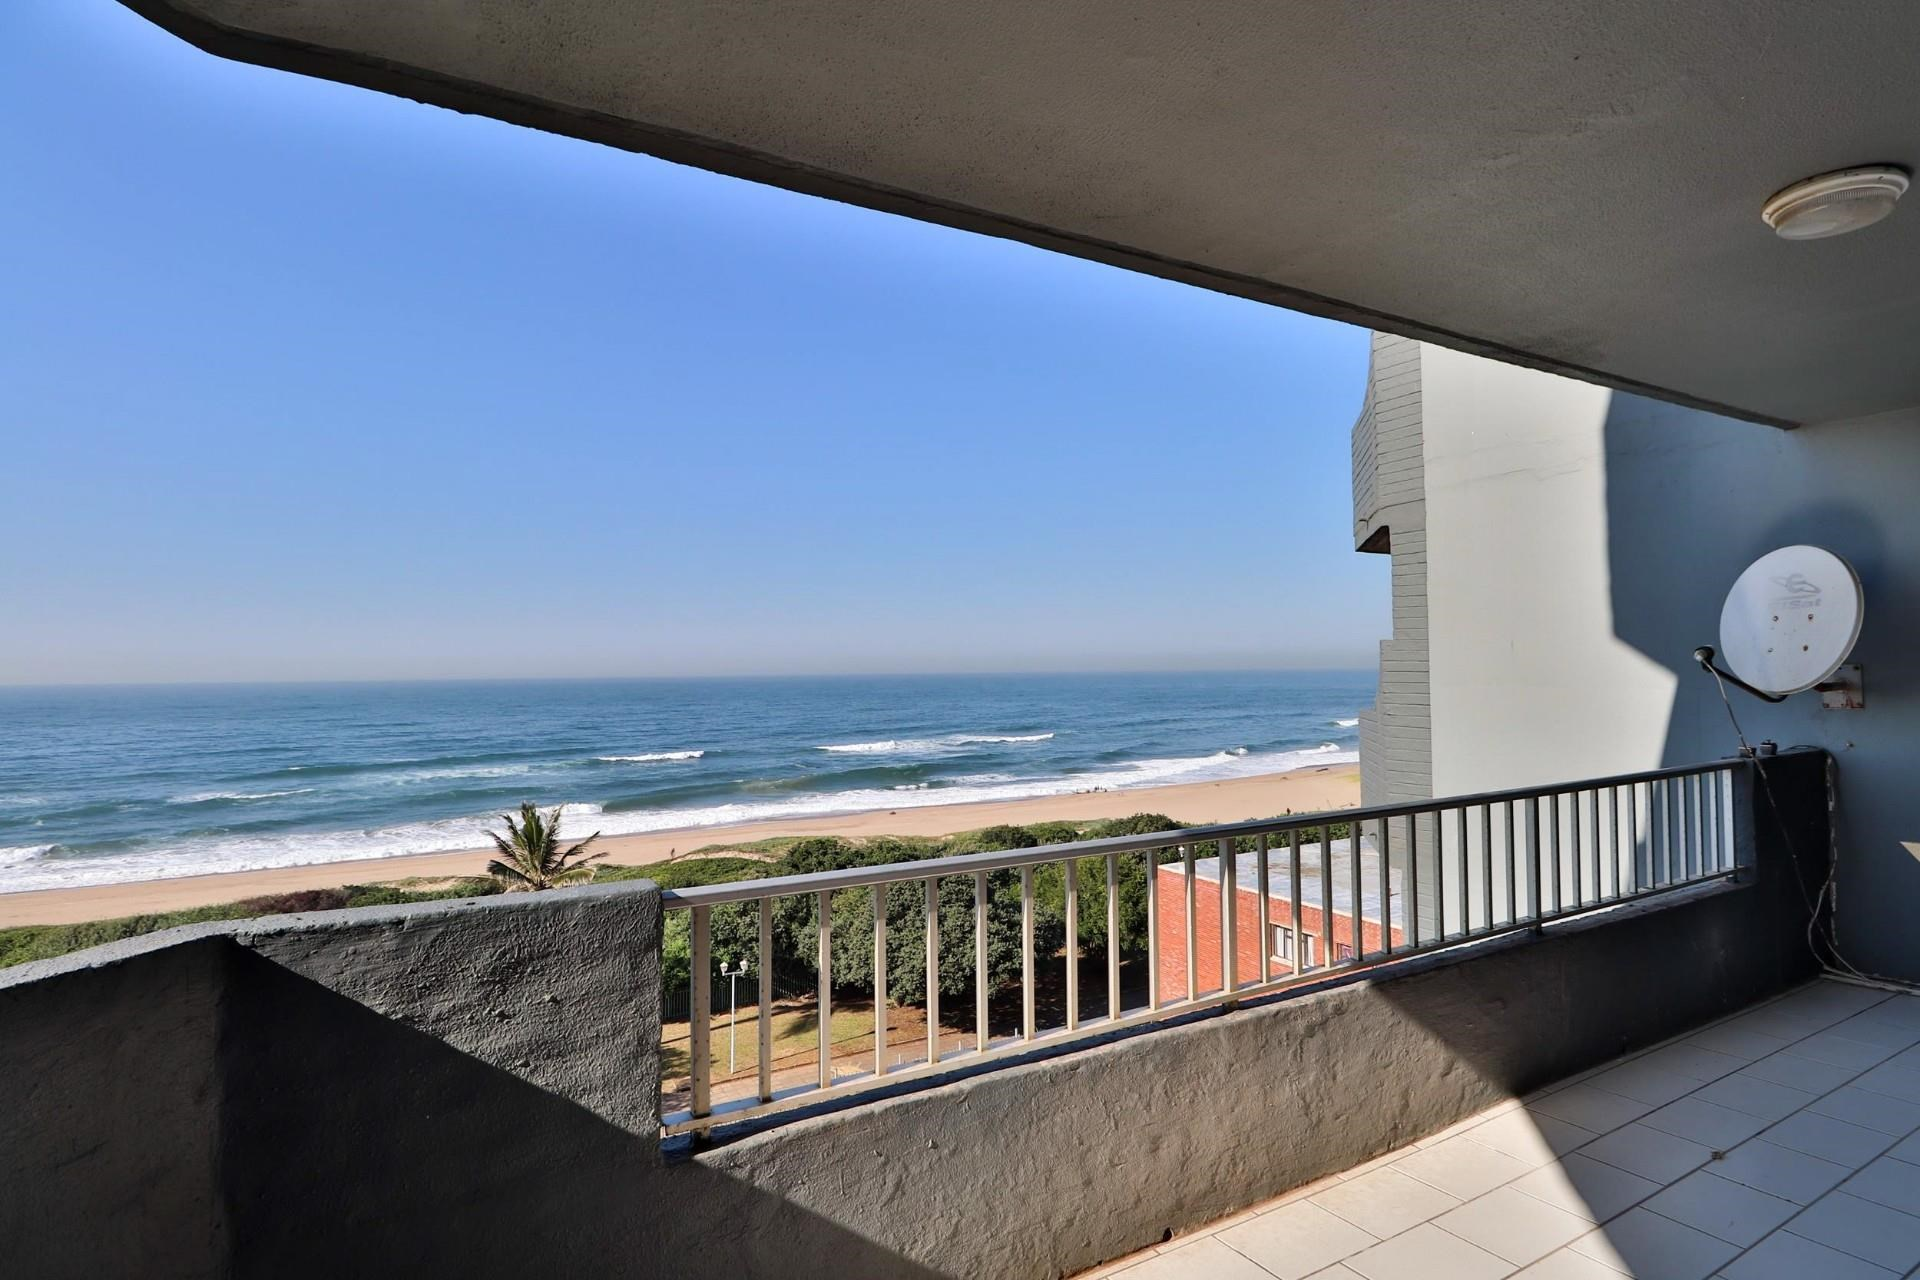 3 Bedroom Apartment for Sale in Amanzimtoti